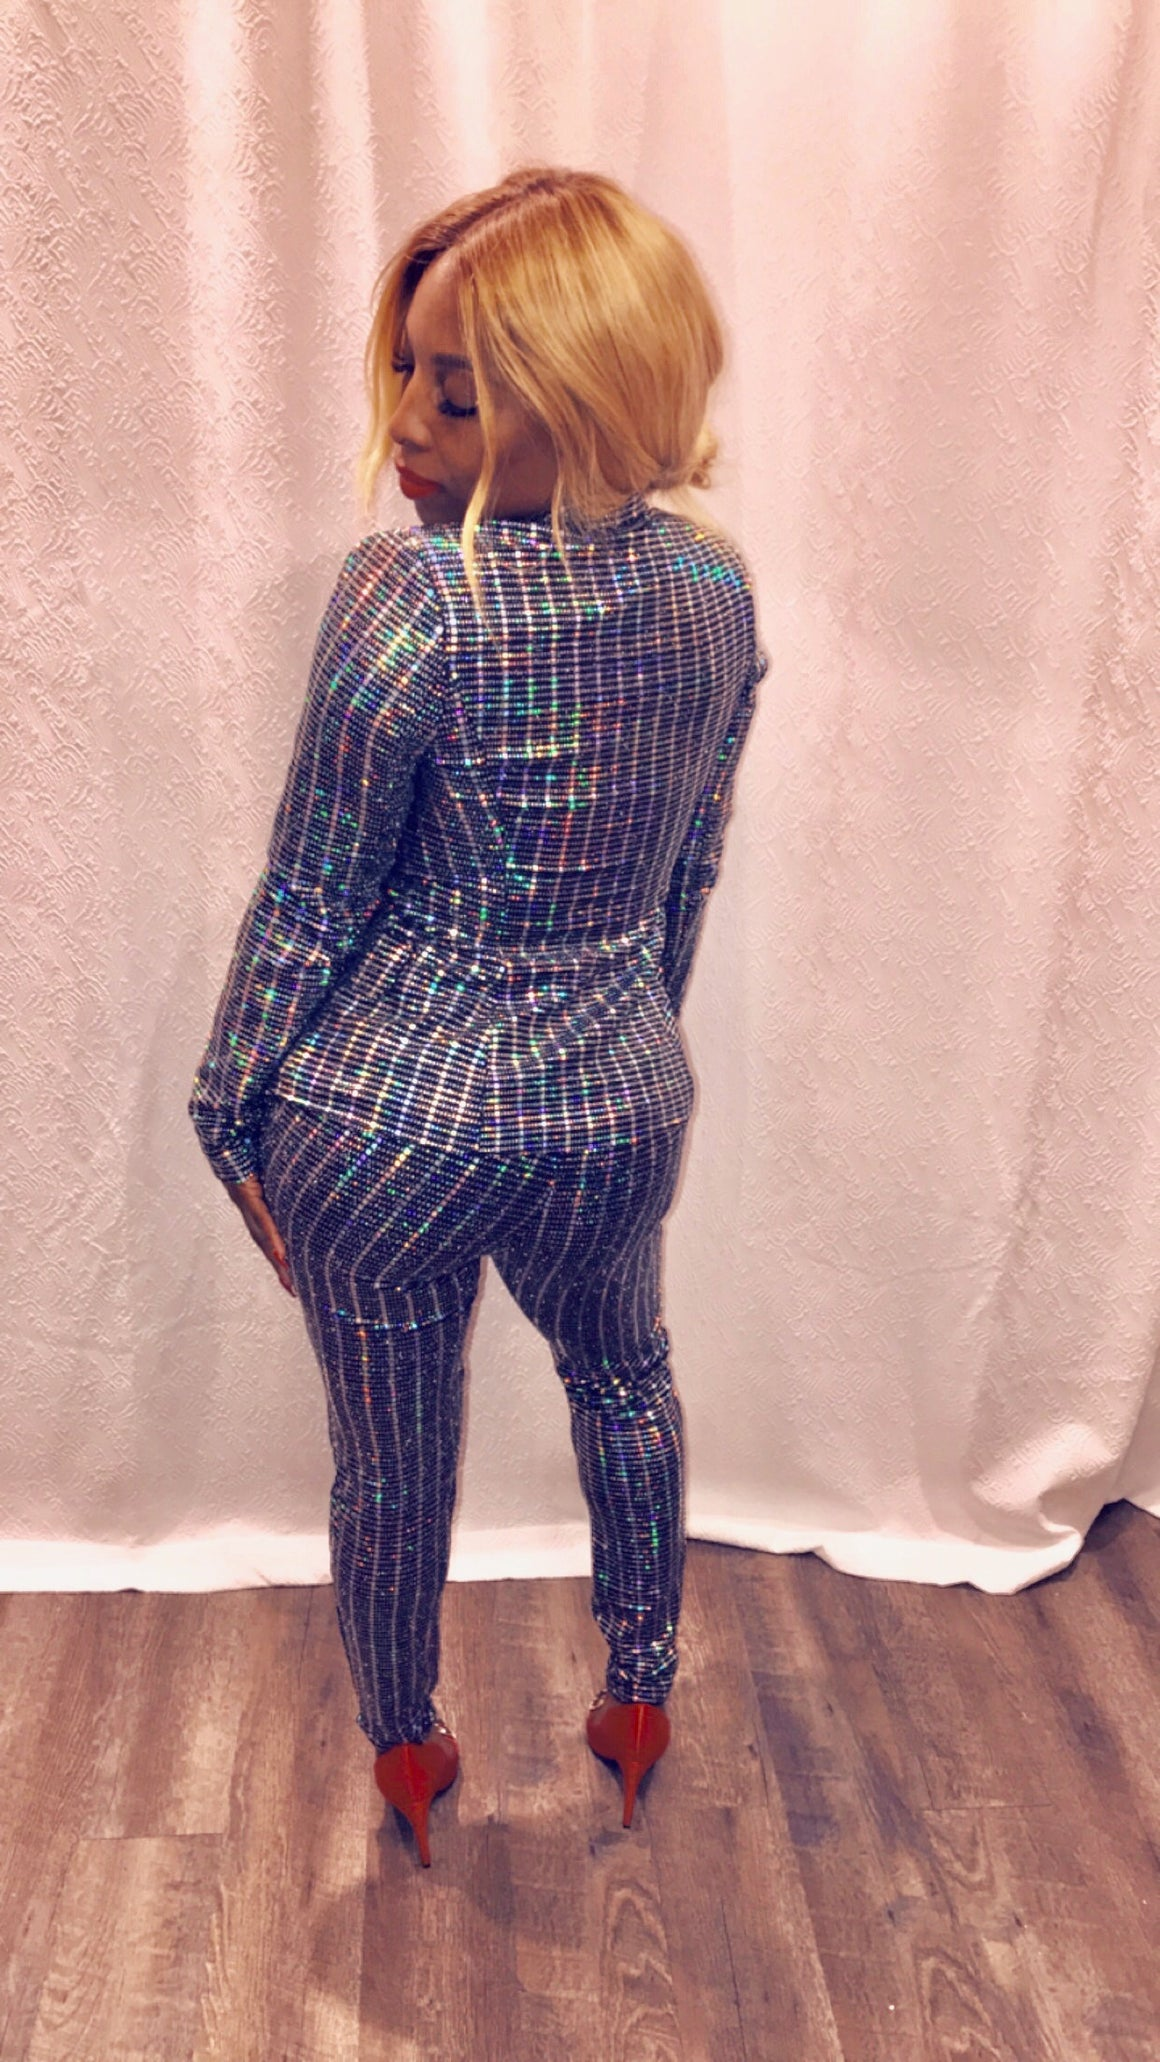 The BO$$Lady Suit